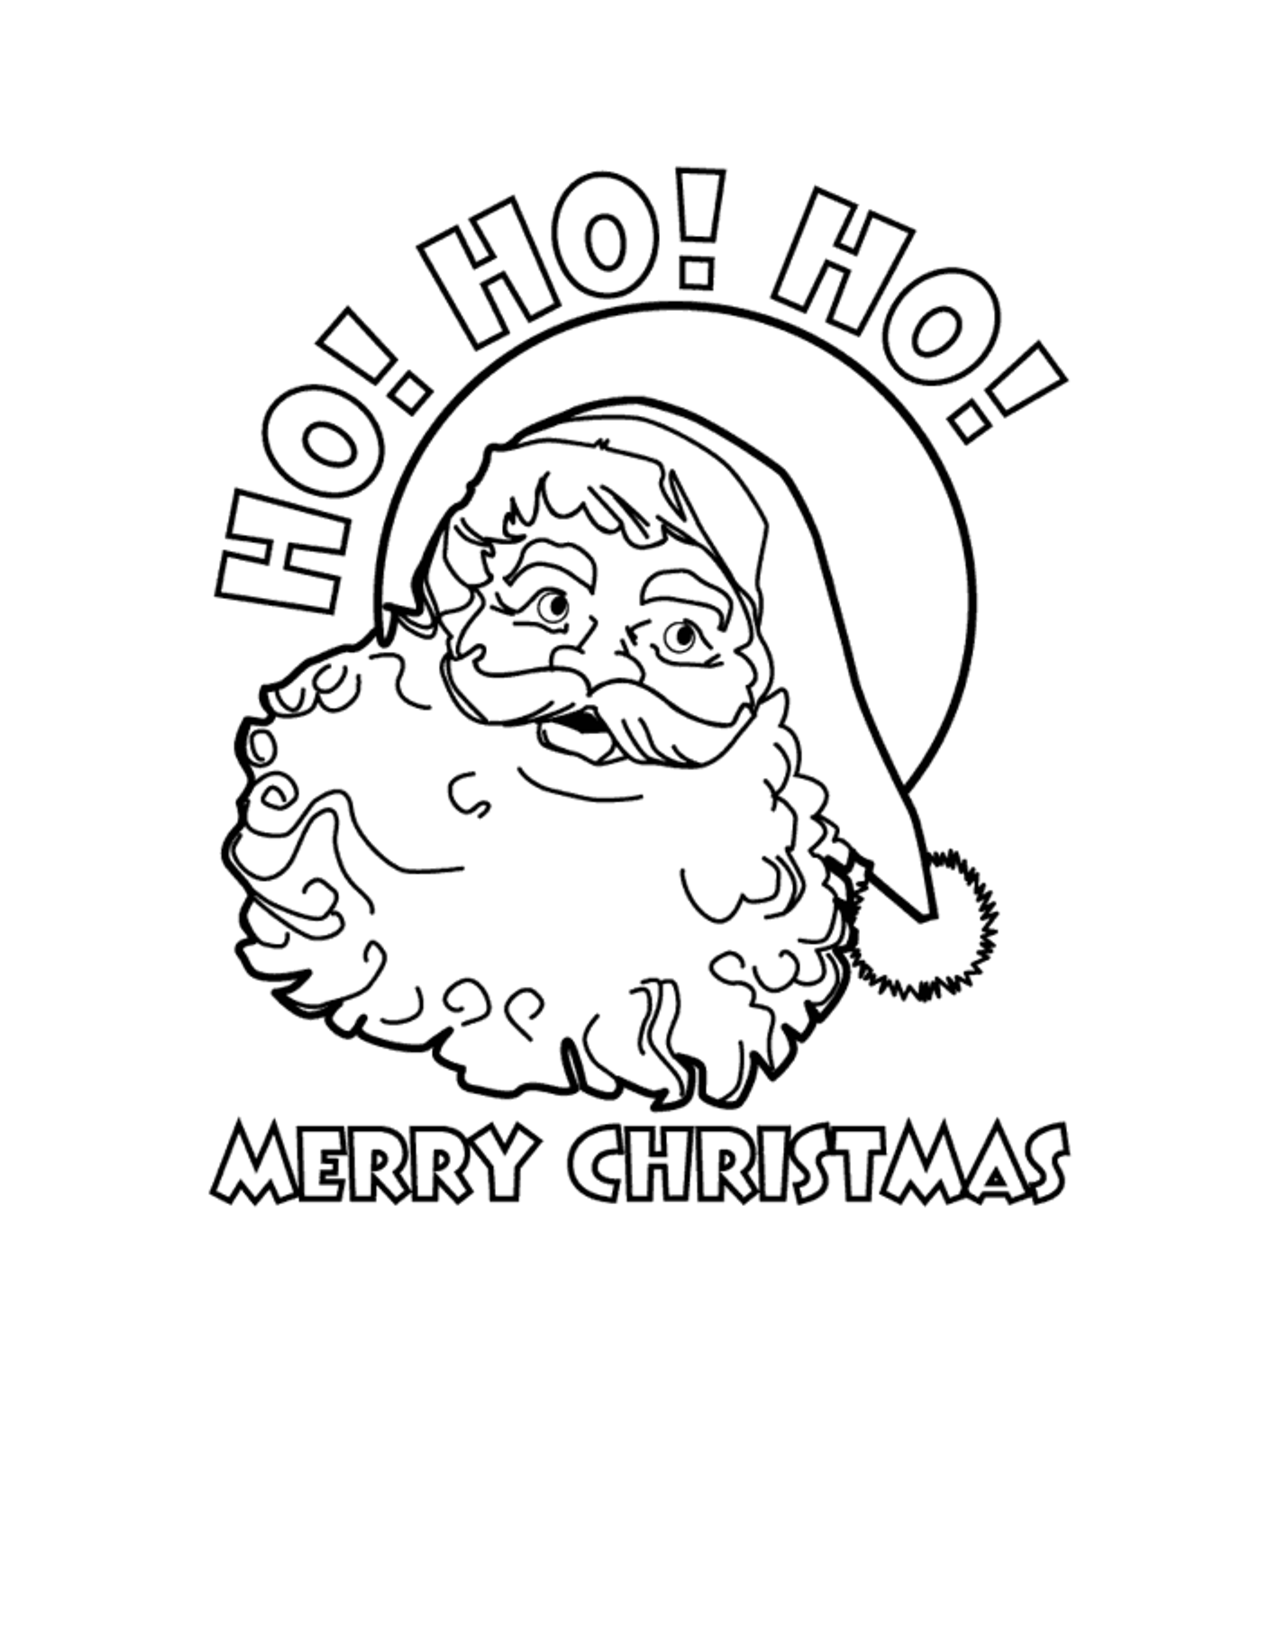 merry christmas printable coloring pages ho ho ho merry christmas santa free printable coloring sheet